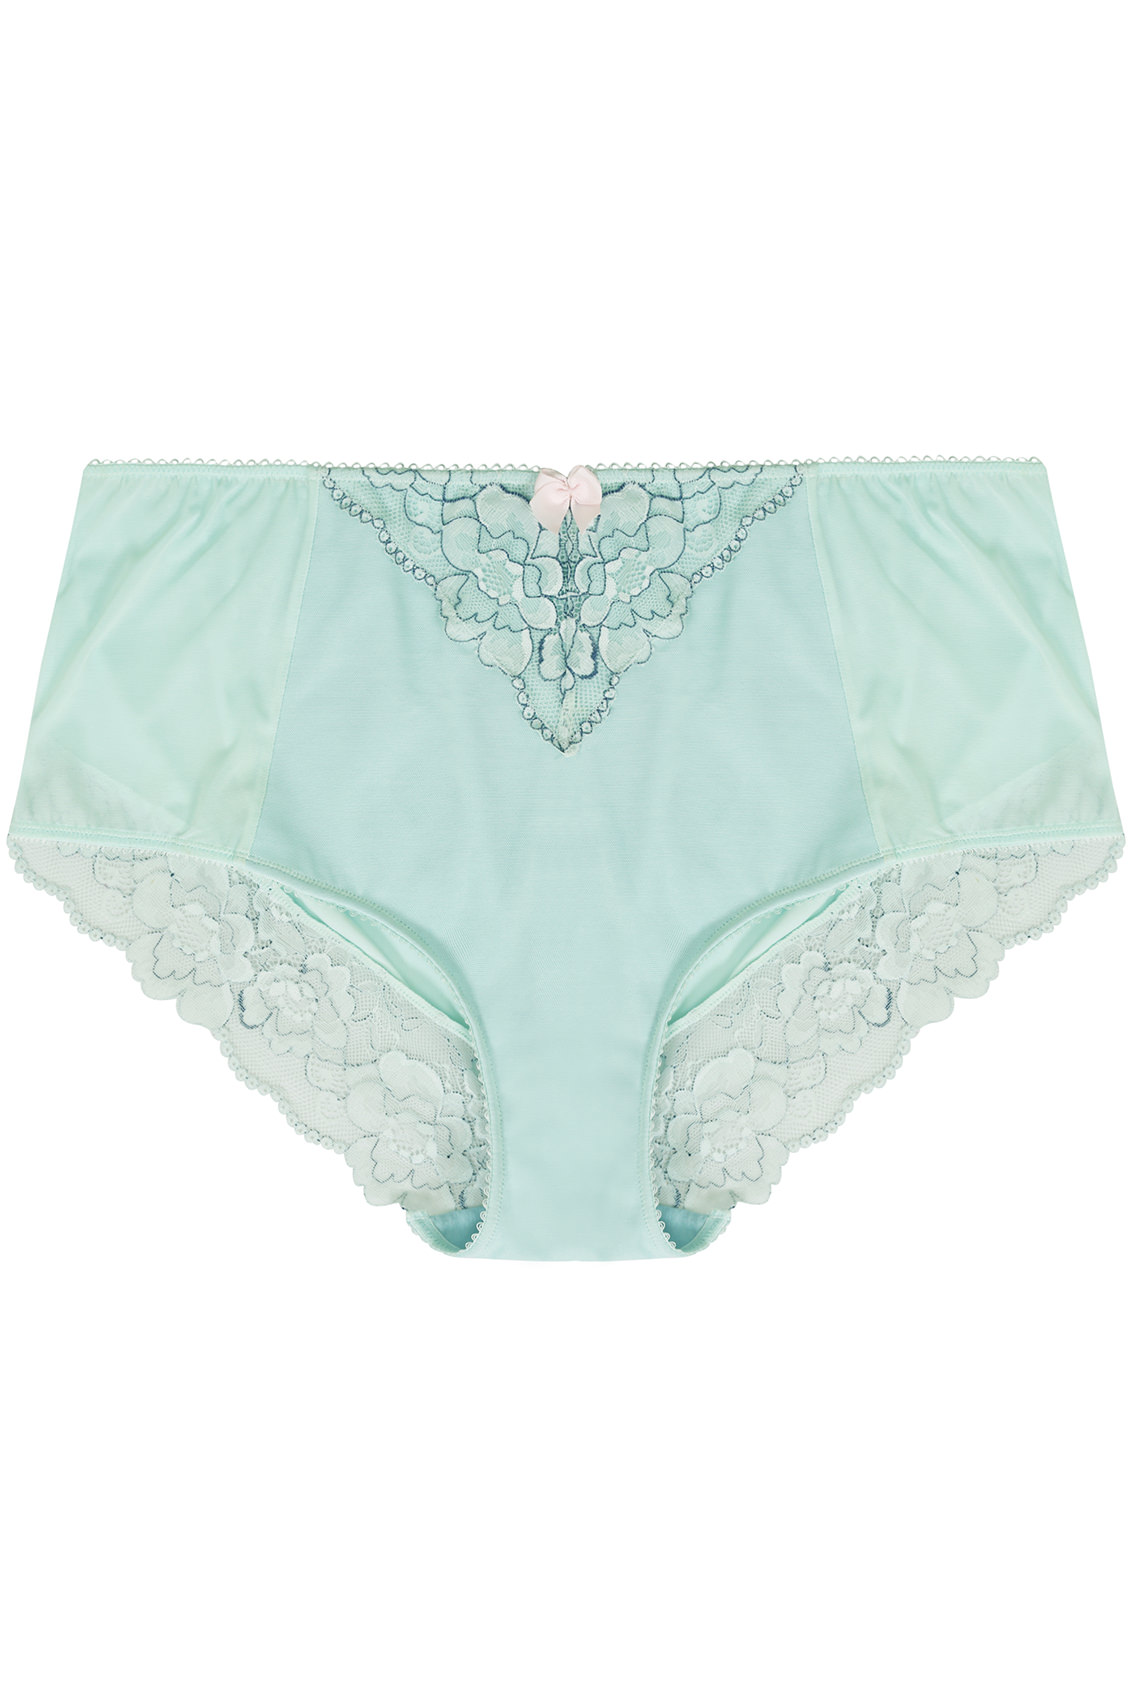 mint green blue two tone mesh brief with floral lace. Black Bedroom Furniture Sets. Home Design Ideas